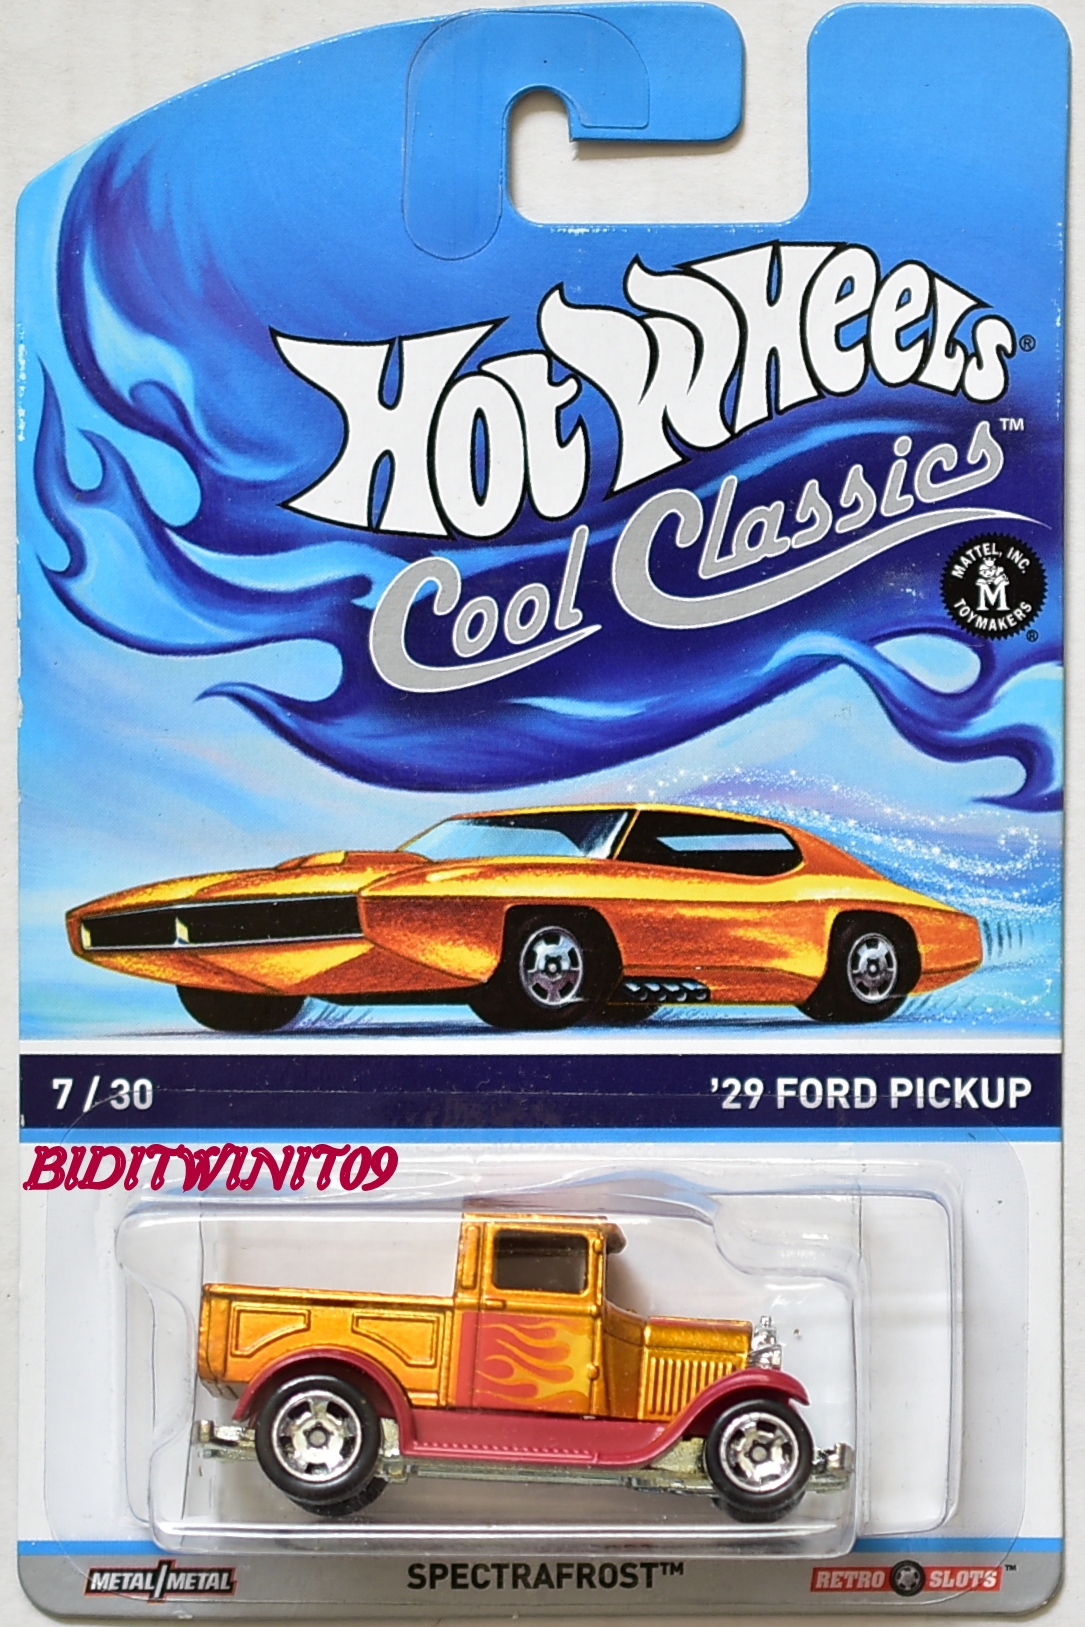 HOT WHEELS COOL CLASSICS - SPECTRAFROST #7/30 '29 FORD PICKUP E+